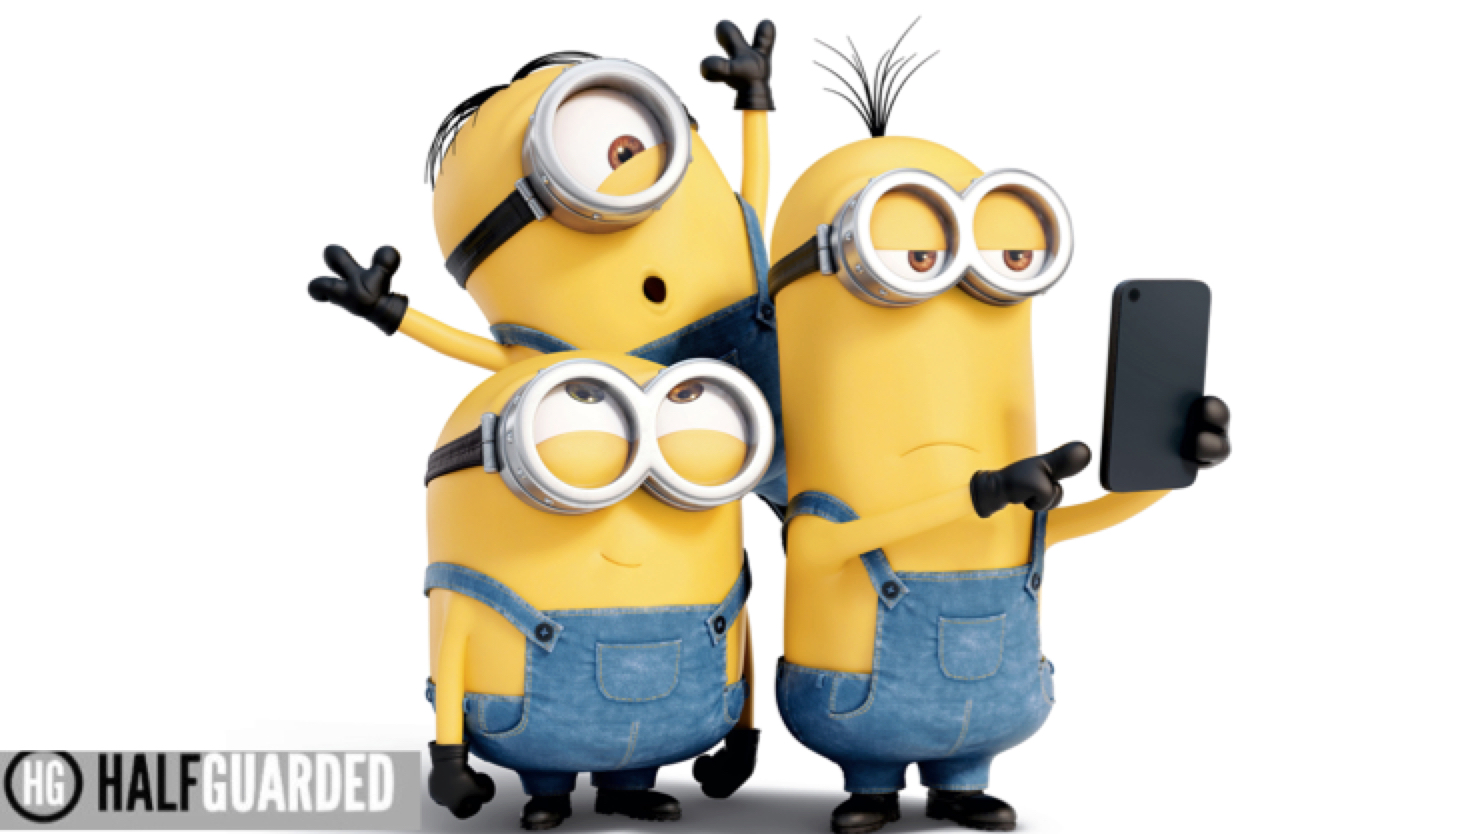 Minions 2 (2020) Movie Trailer, Release Date & More – Will there be a Minions 2?